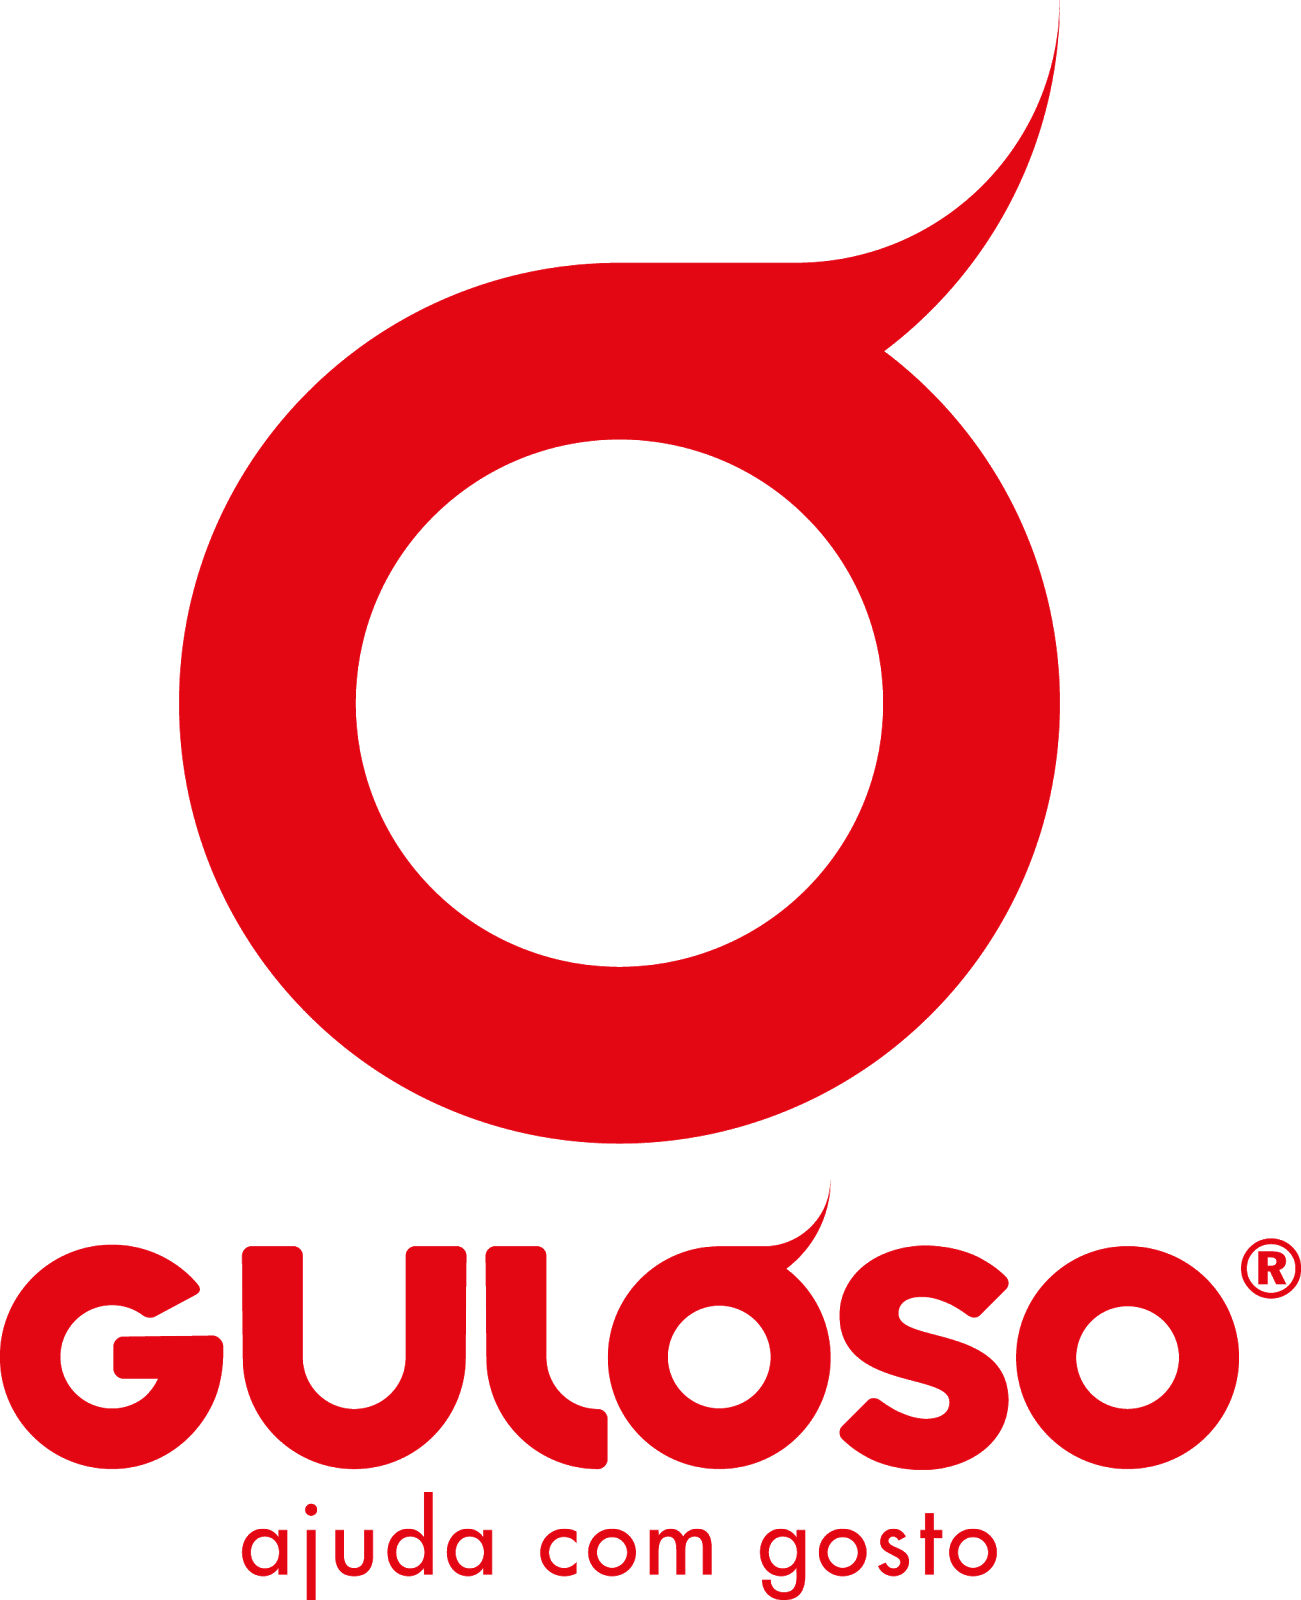 Guloso